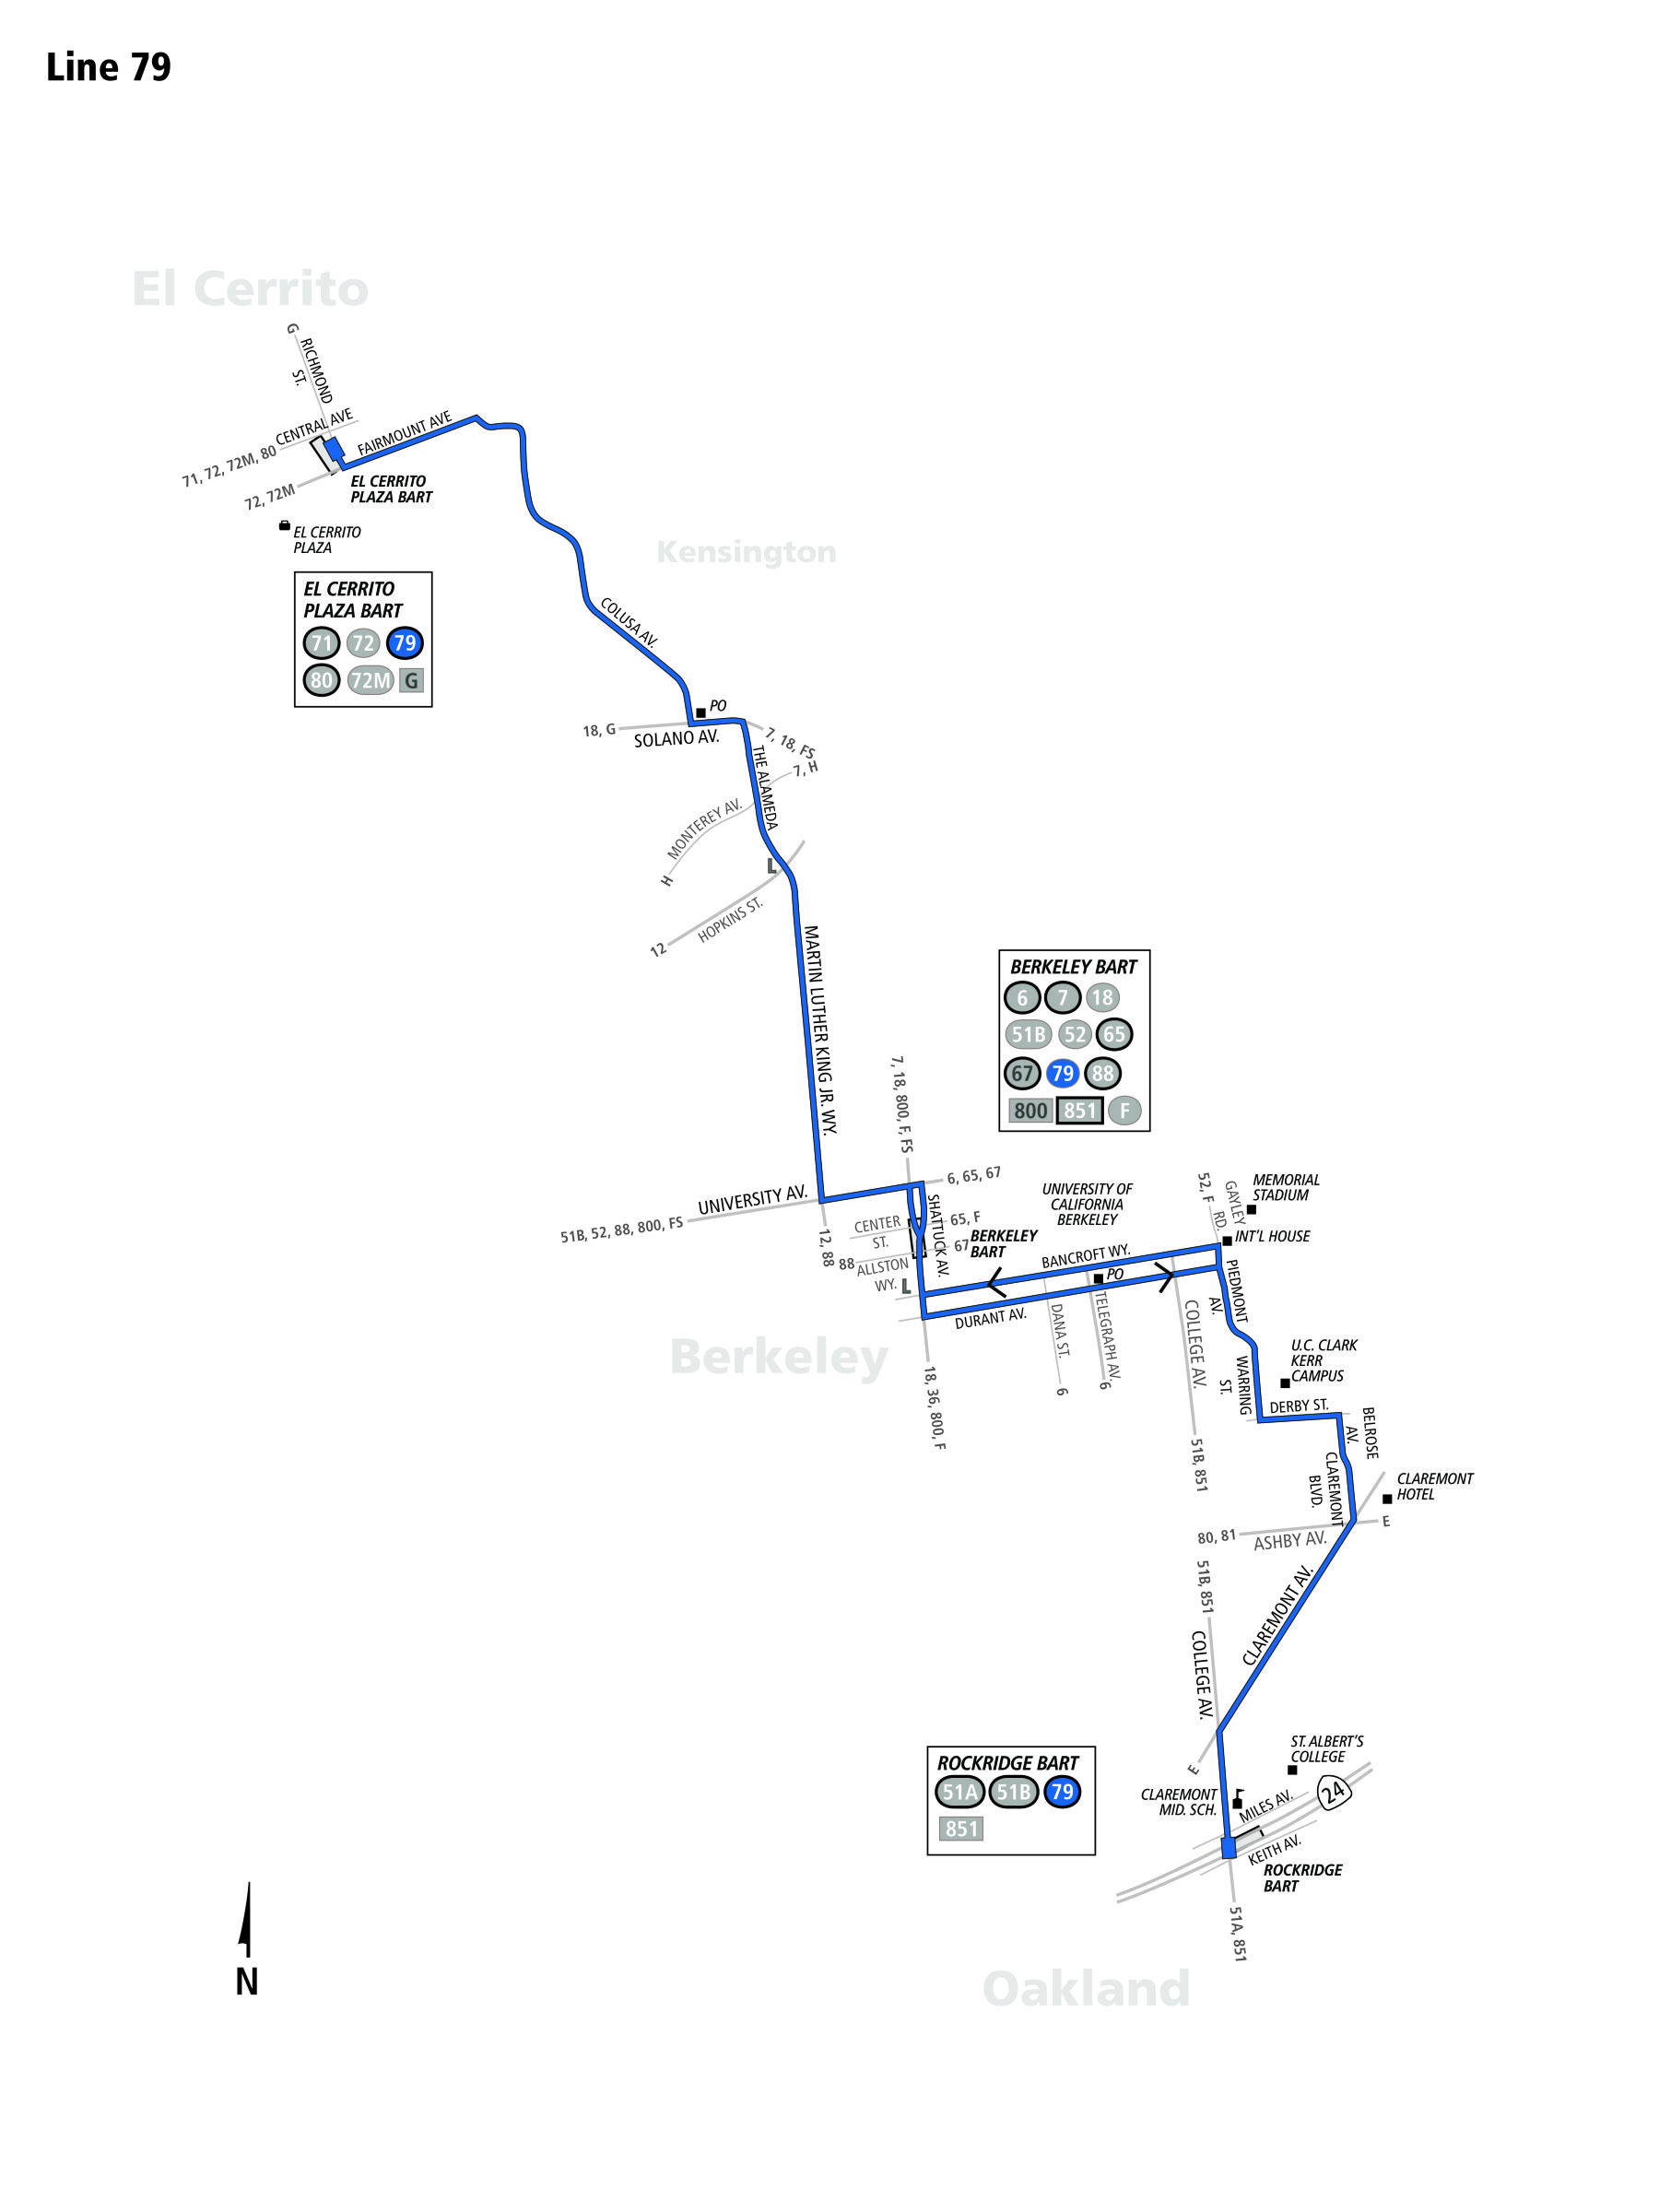 route_79  Berkerley Bus Route Ac Transit Map on